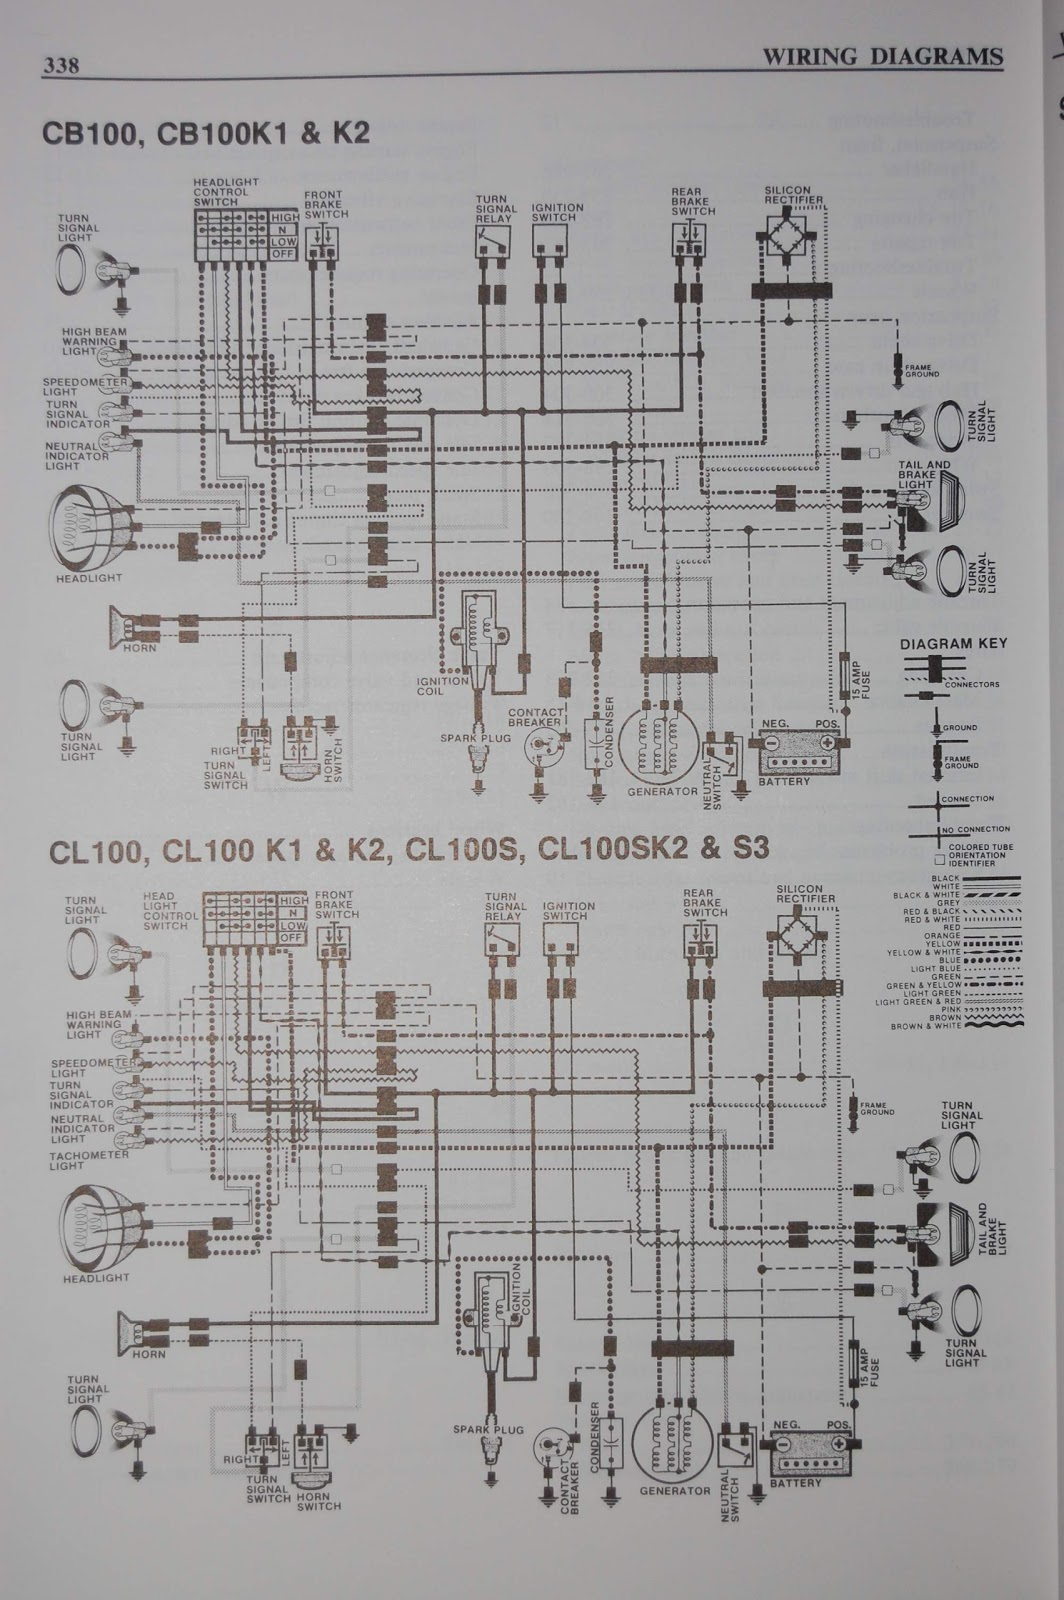 CB100 Wiring Diagram